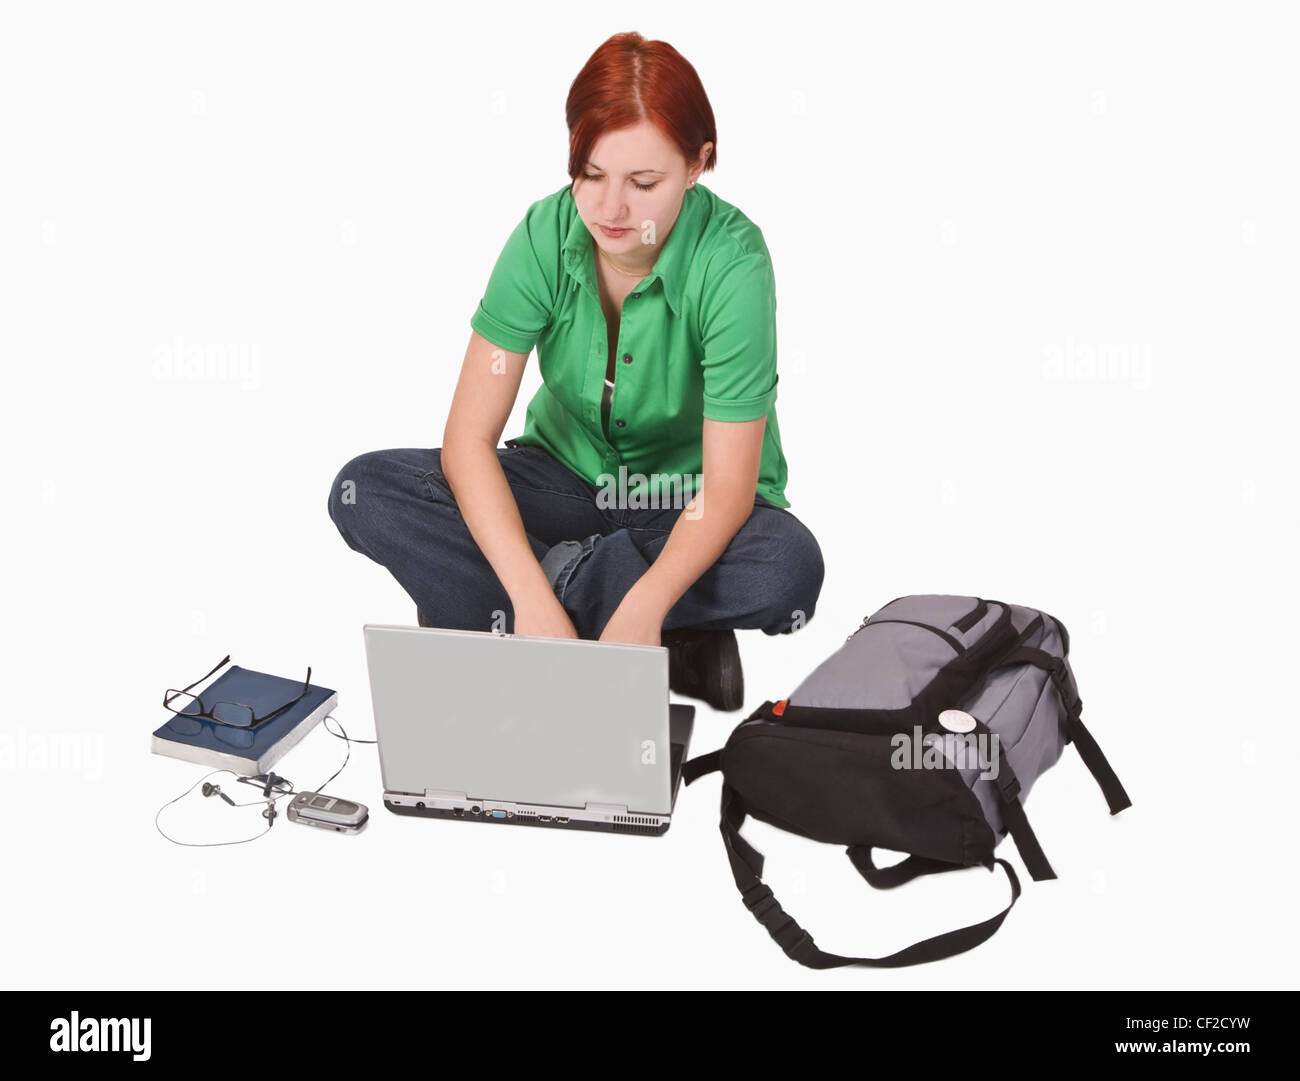 Redheaded teenage girl with a lot of items around her working on a laptop. - Stock Image